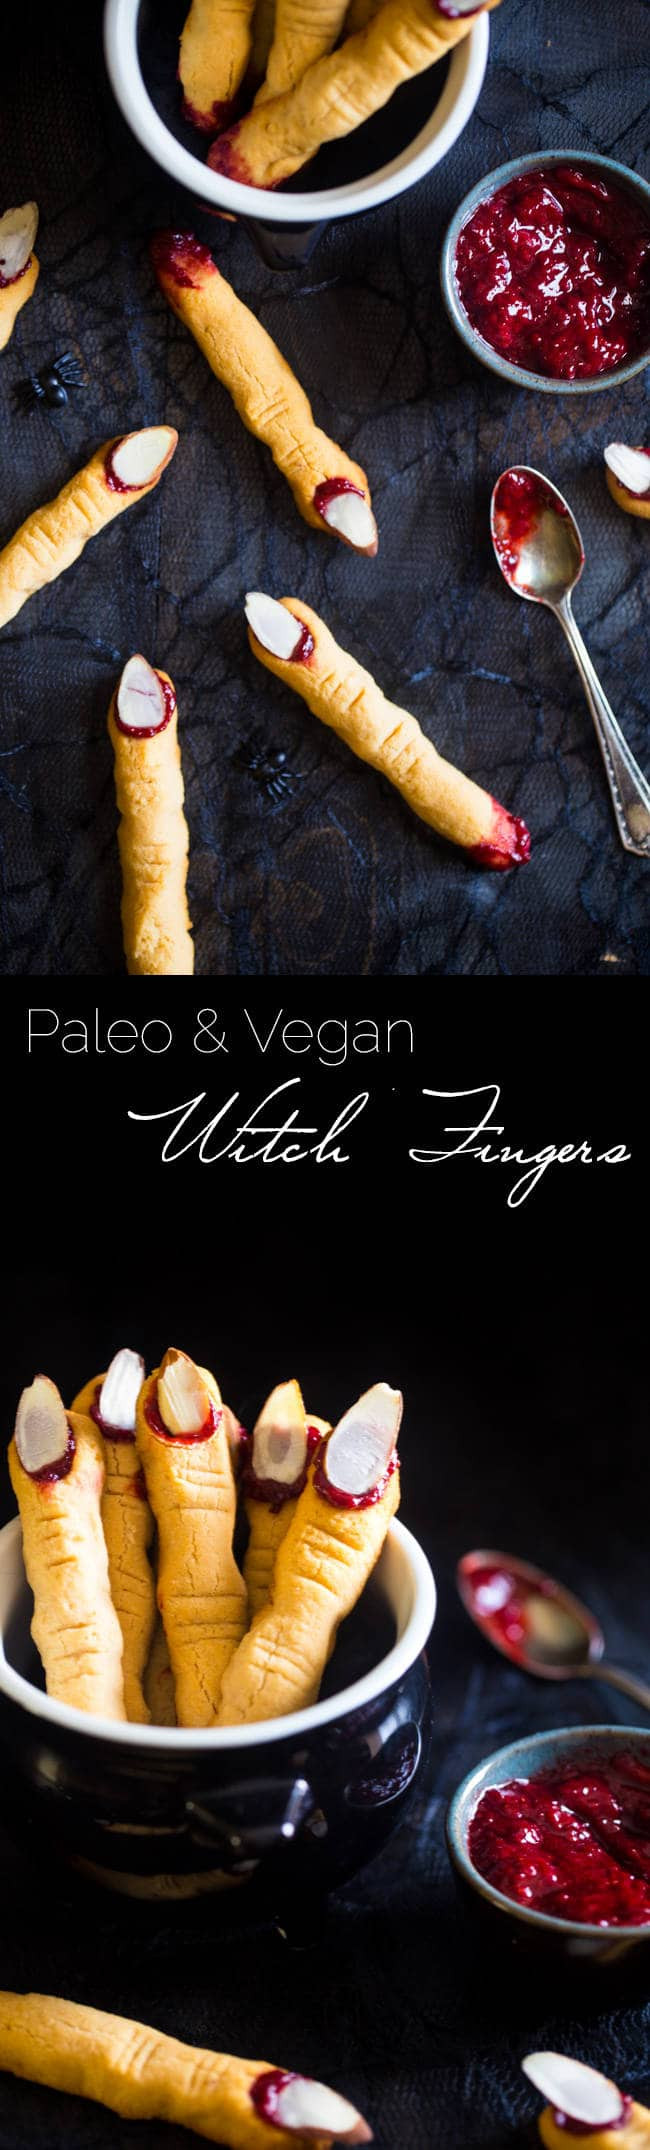 Vegan Halloween Cookies  Paleo Witch Finger Cookies Vegan